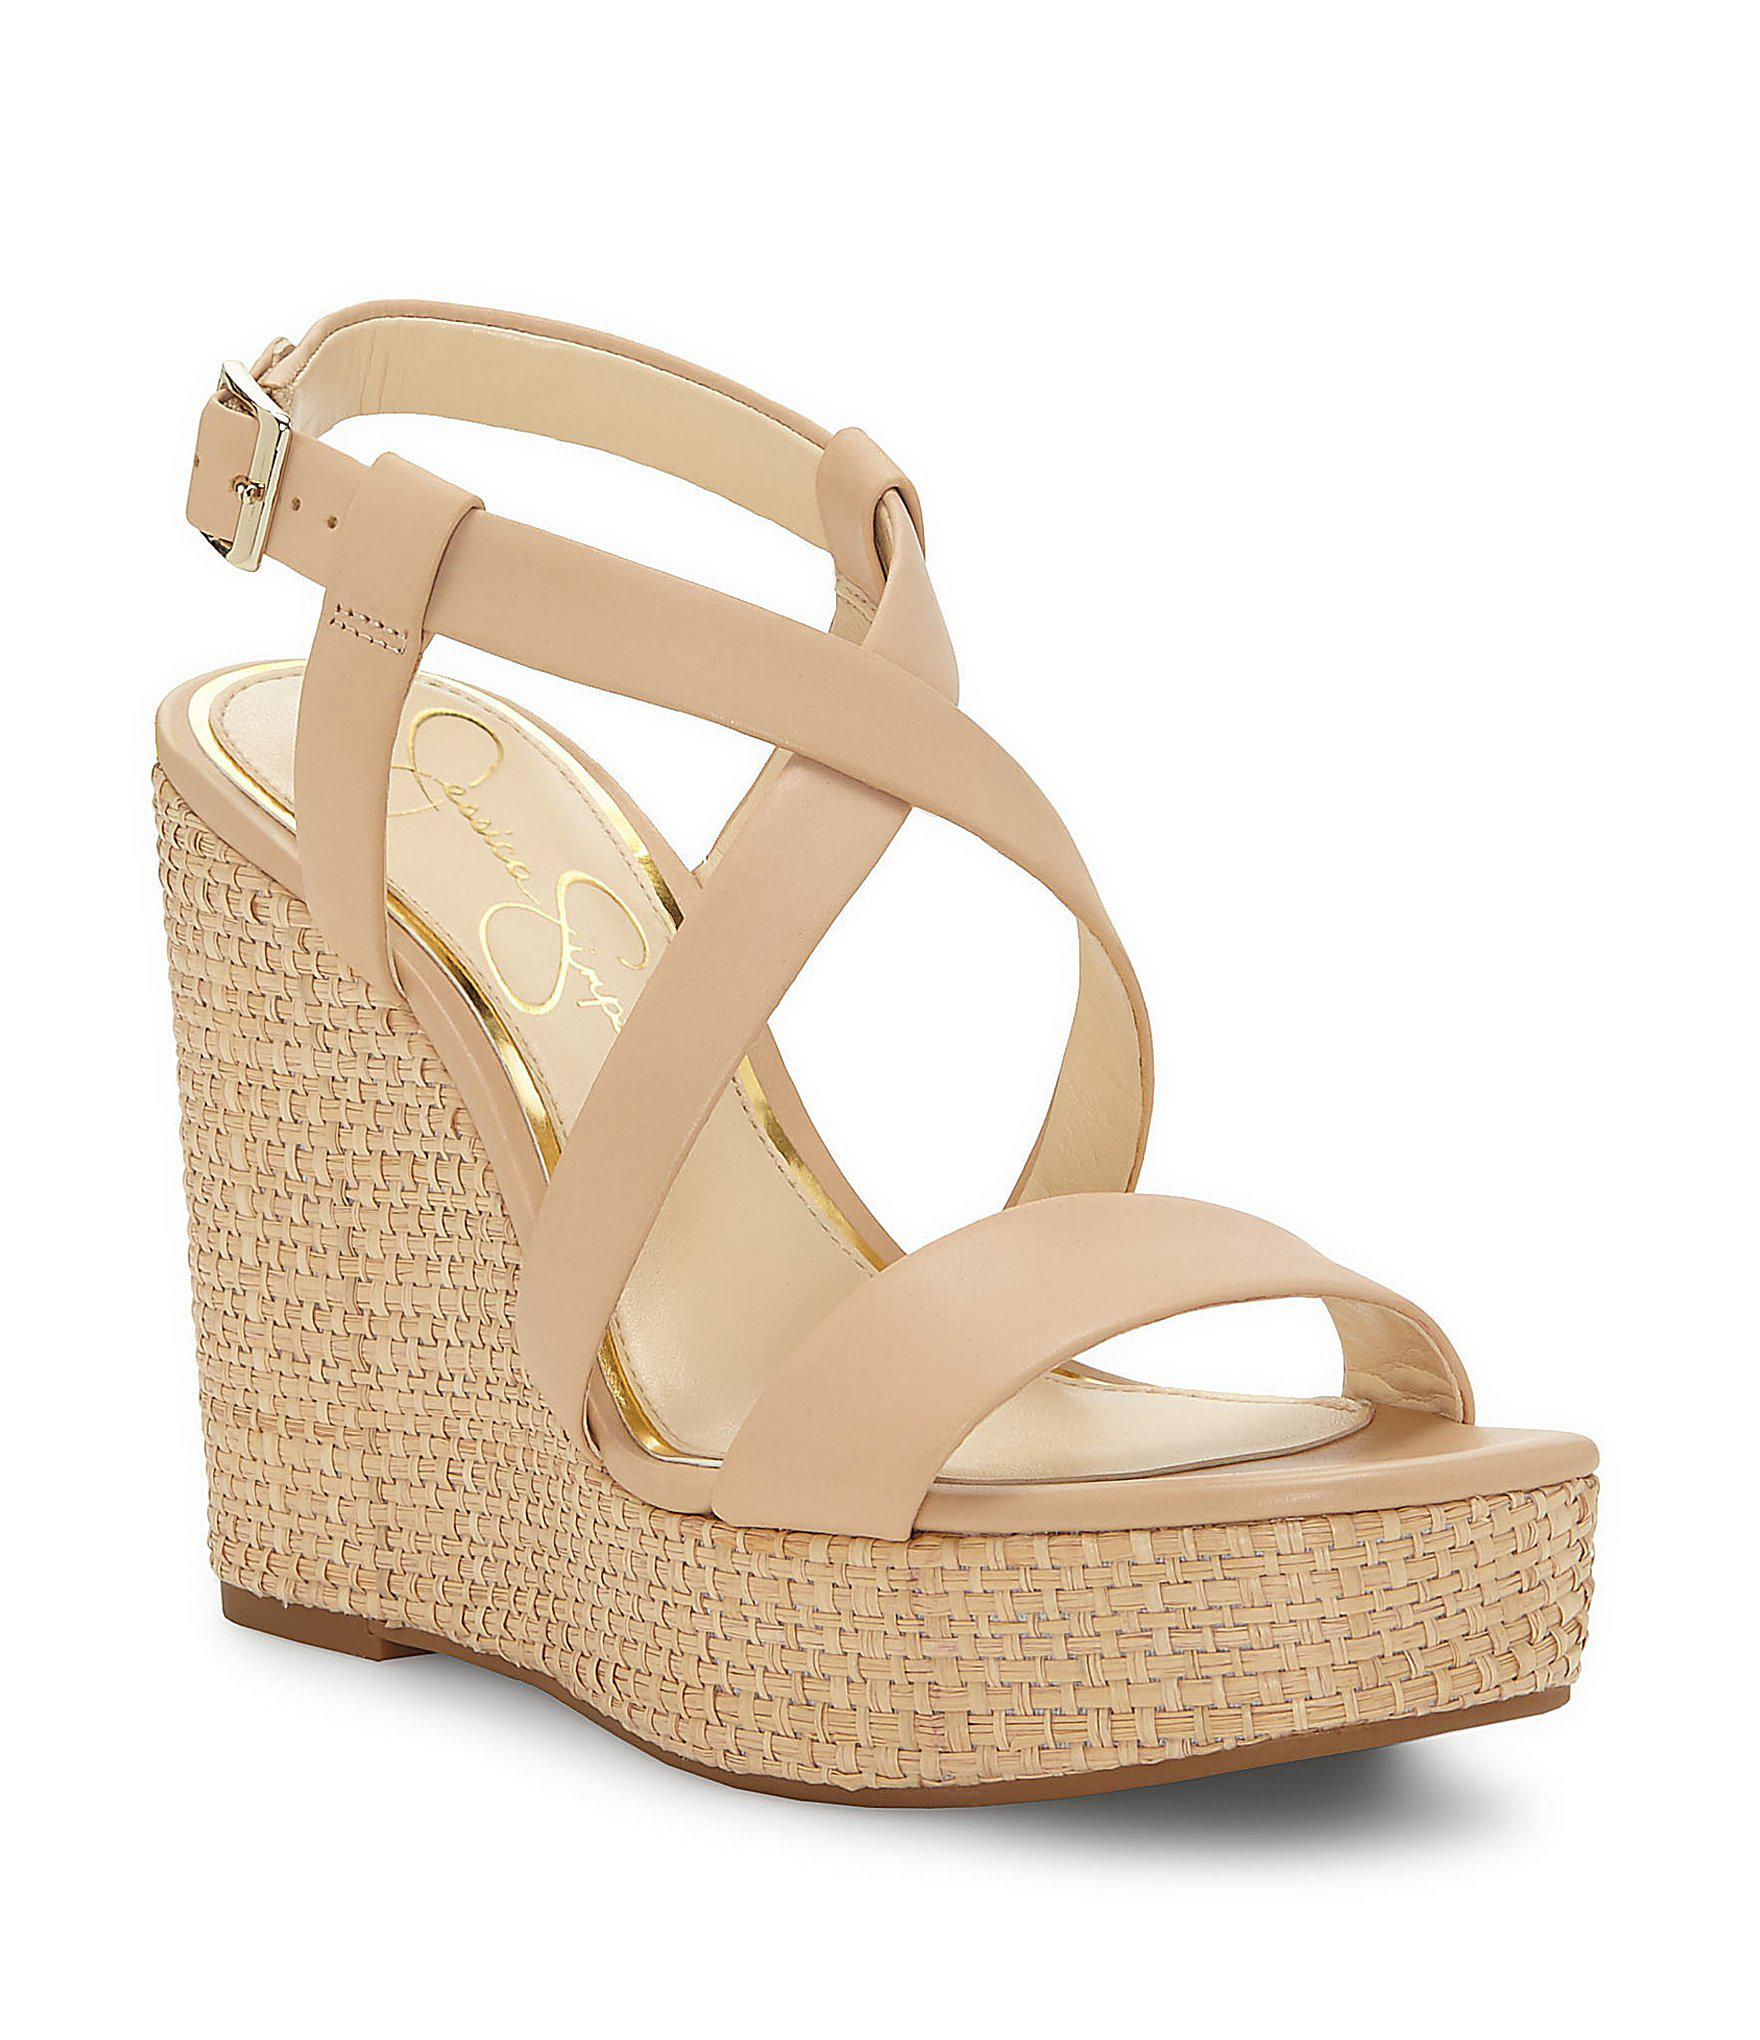 16be38c6fd3 Lyst - Jessica Simpson Salona Wedge Sandals in Natural